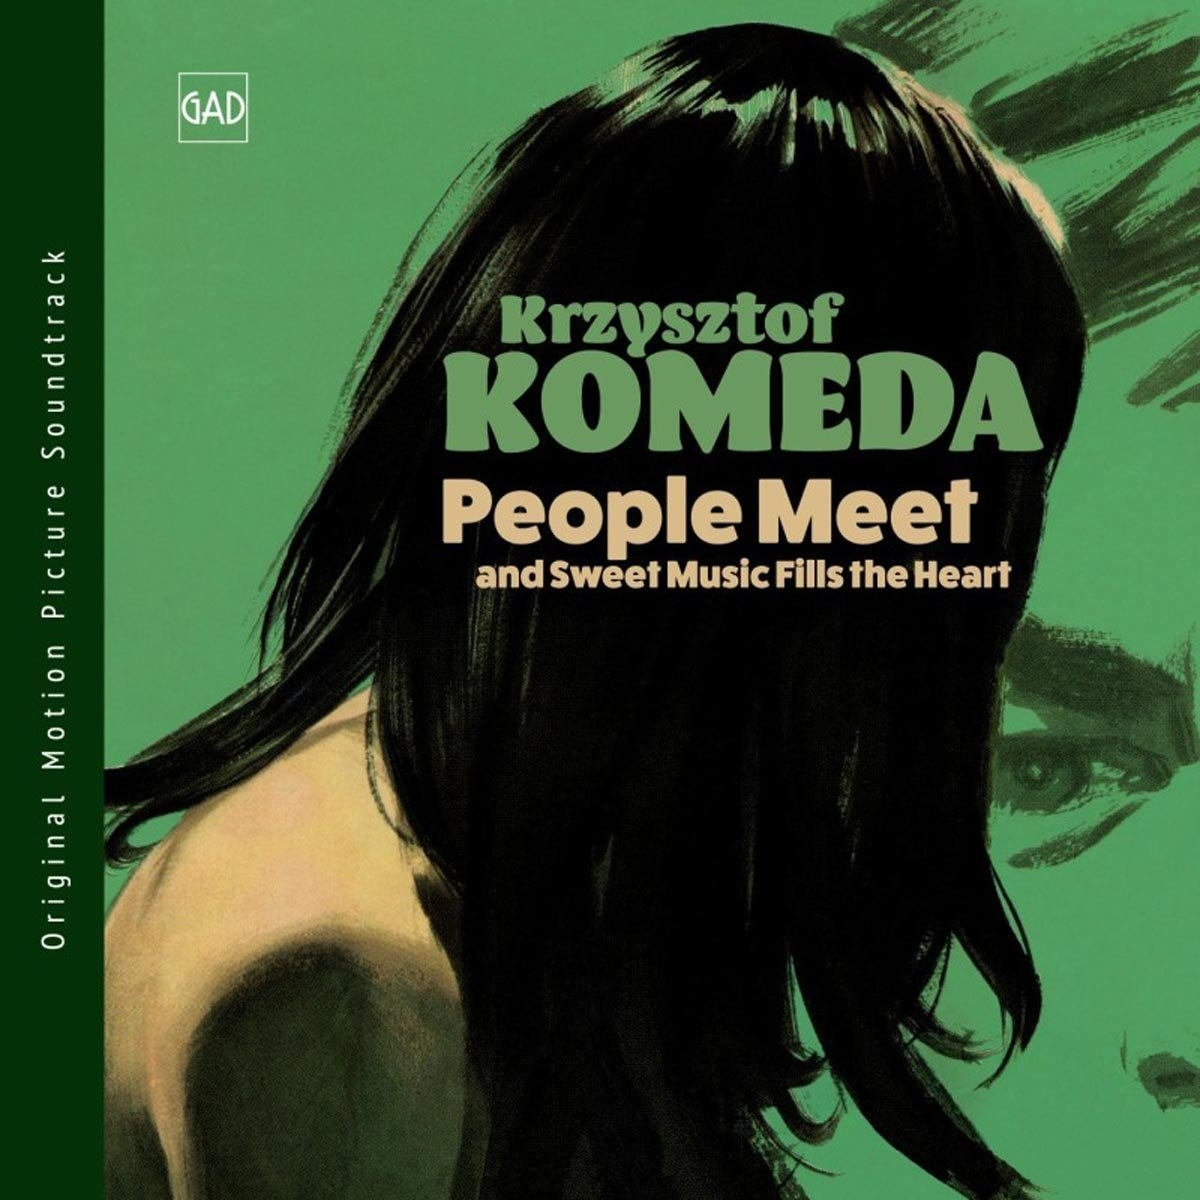 ost 12 17 R Komeda People Meet